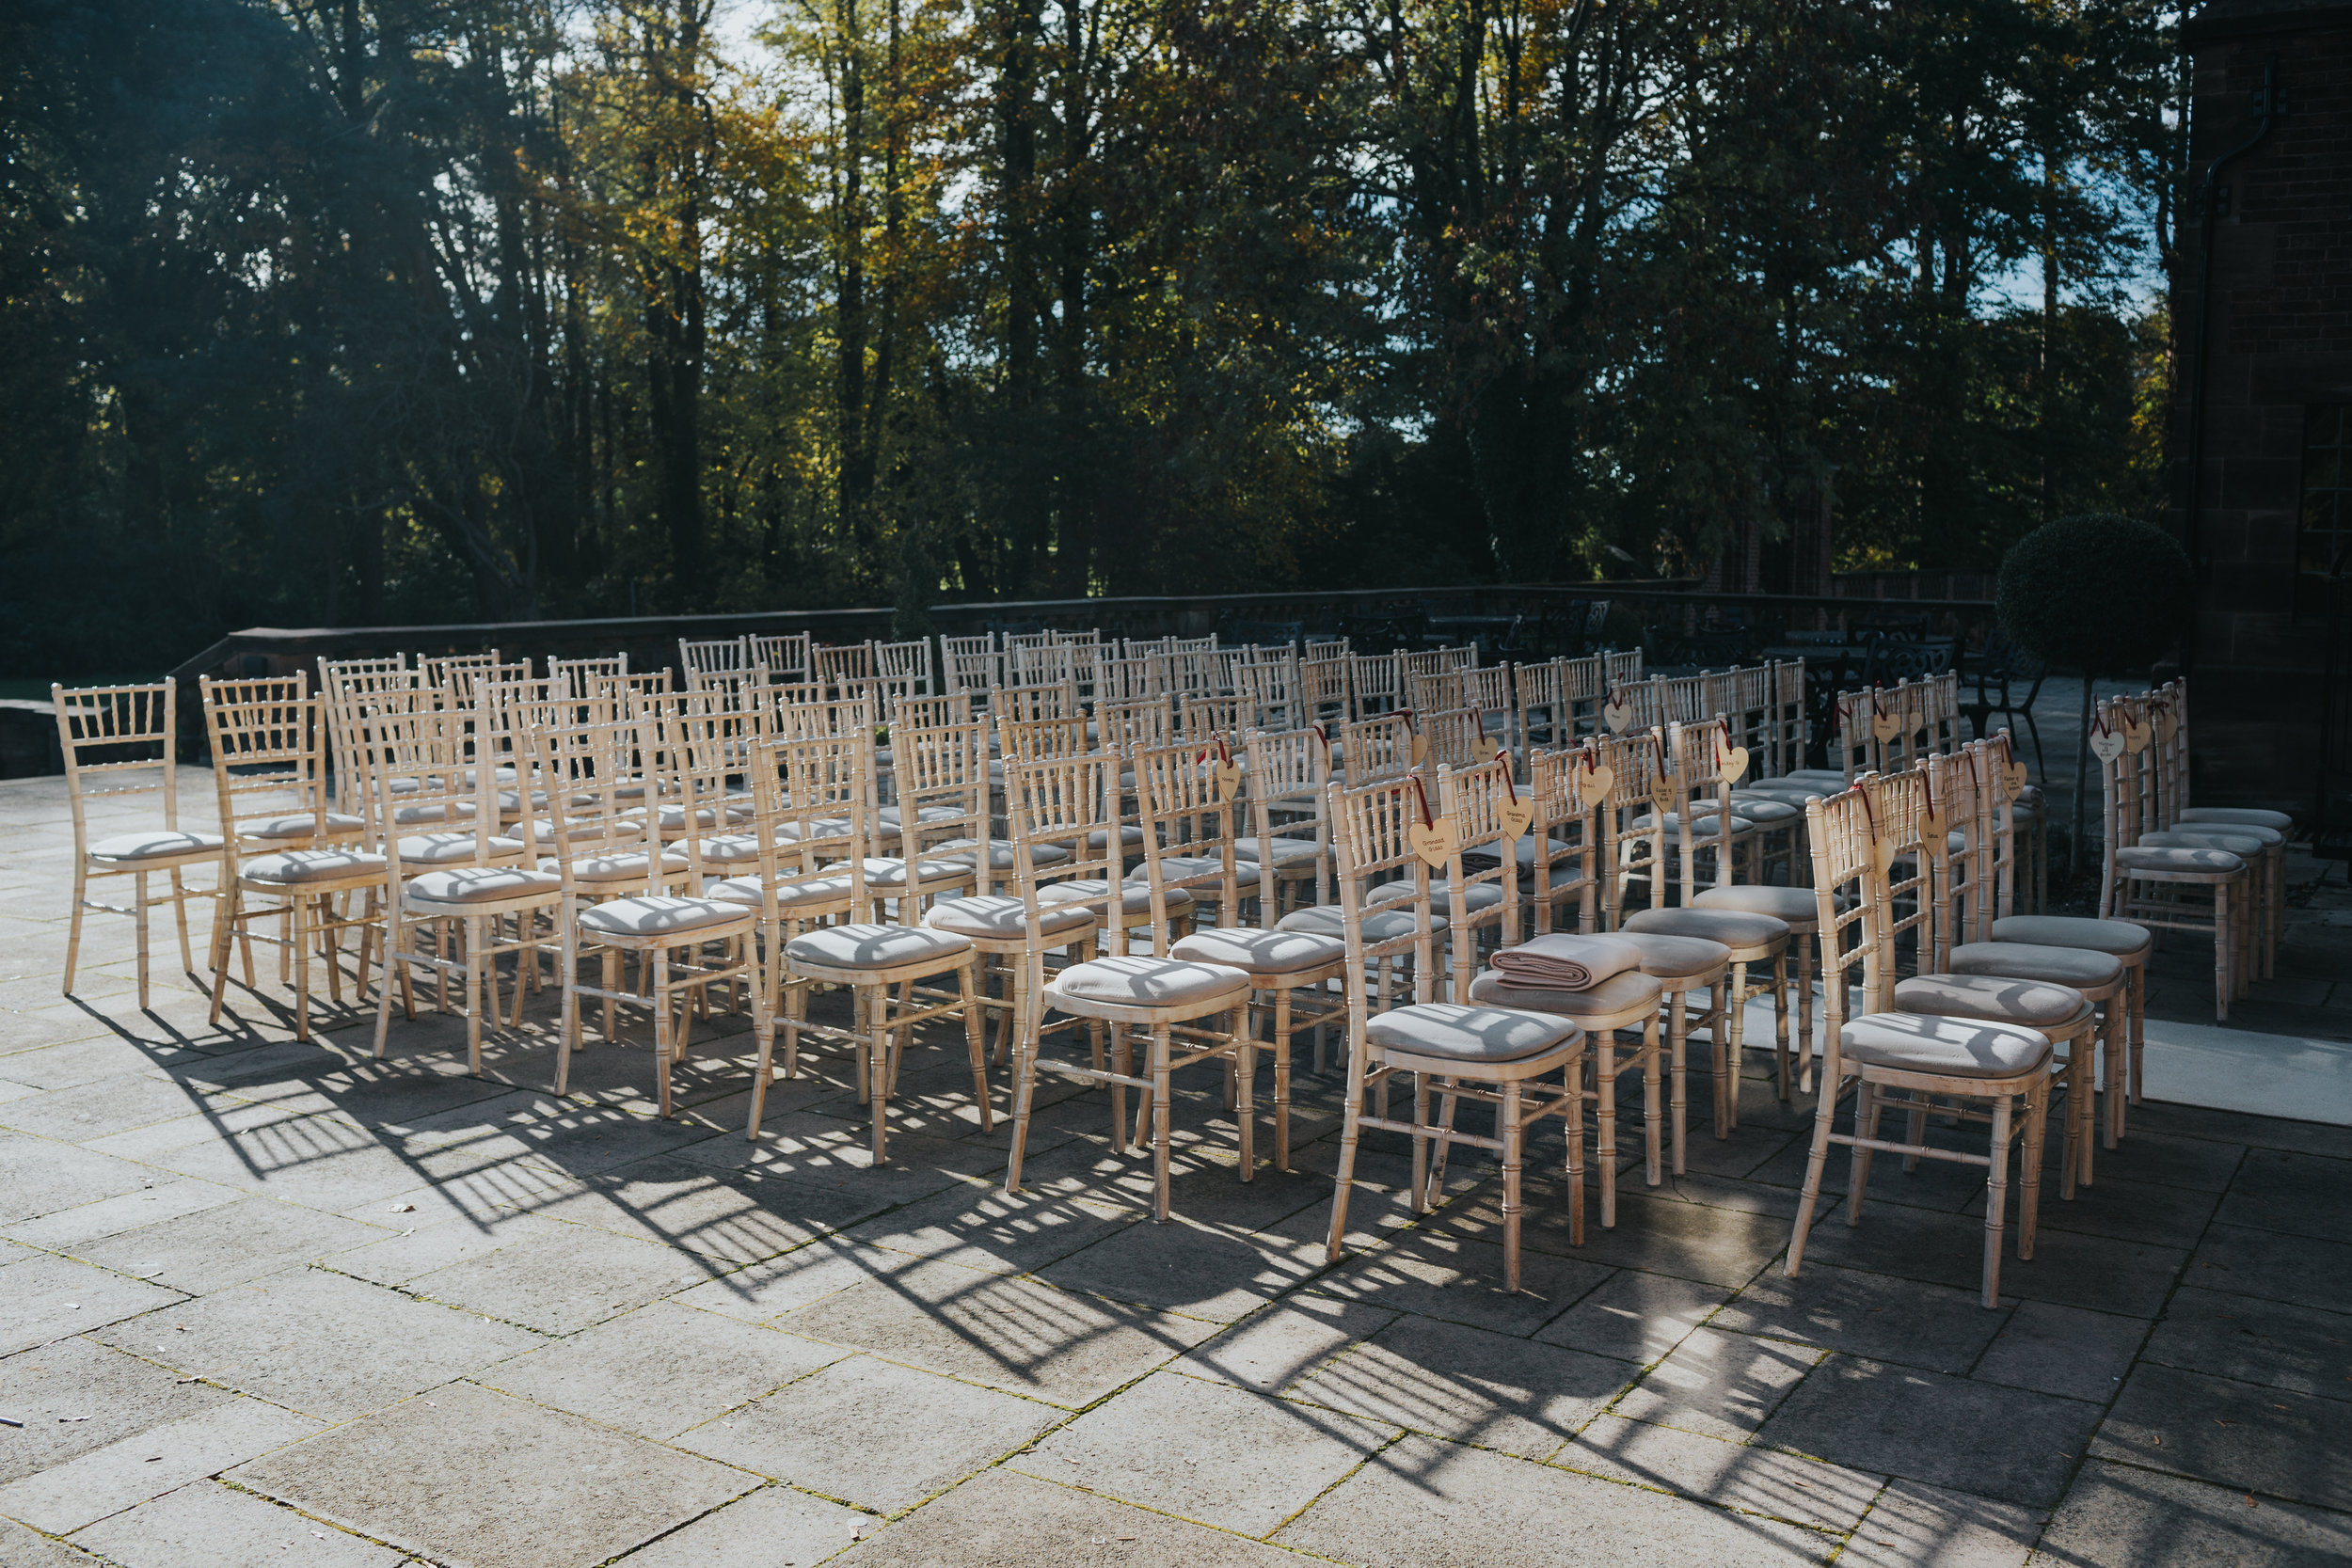 Empty cream wooden wedding chairs, sit empty in the sunlight casting shadows on patio awaiting the wedding guests.